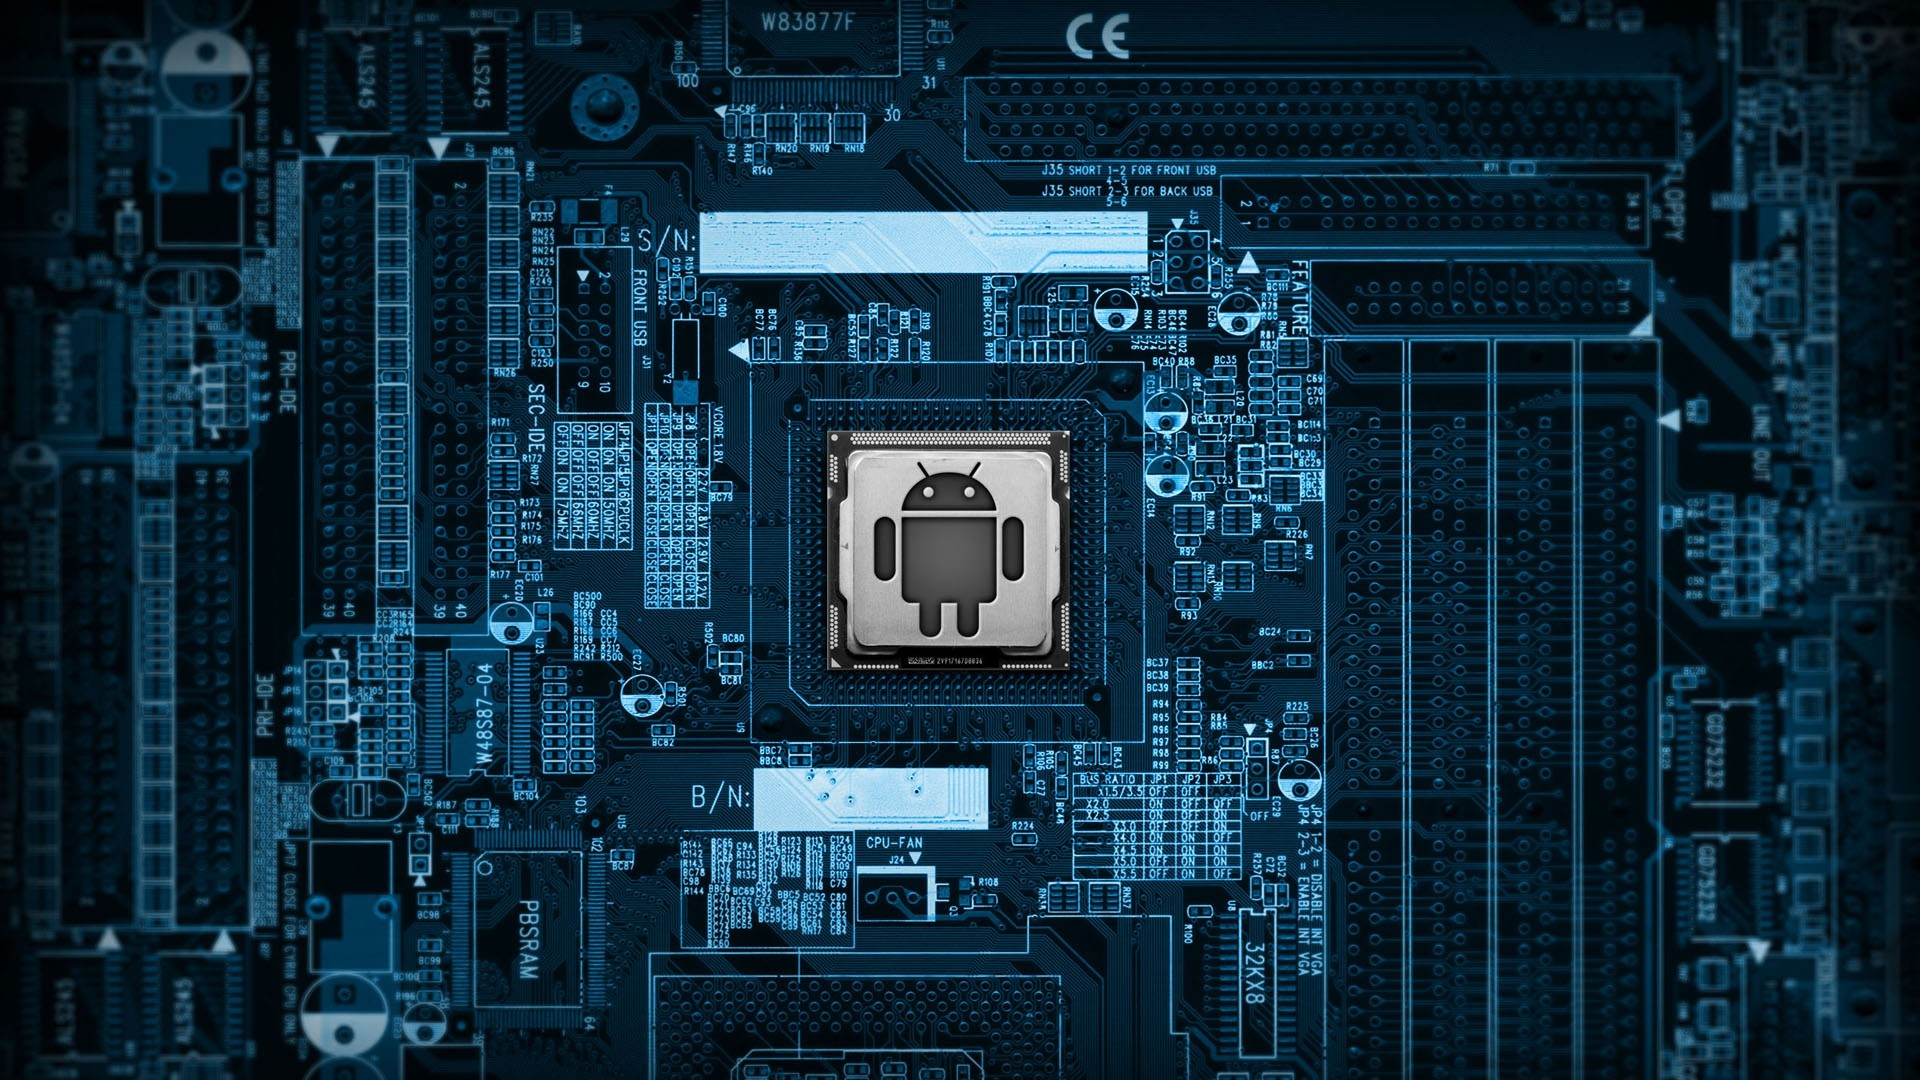 android circuit board hd computer 4k wallpapers images rh hdqwalls com